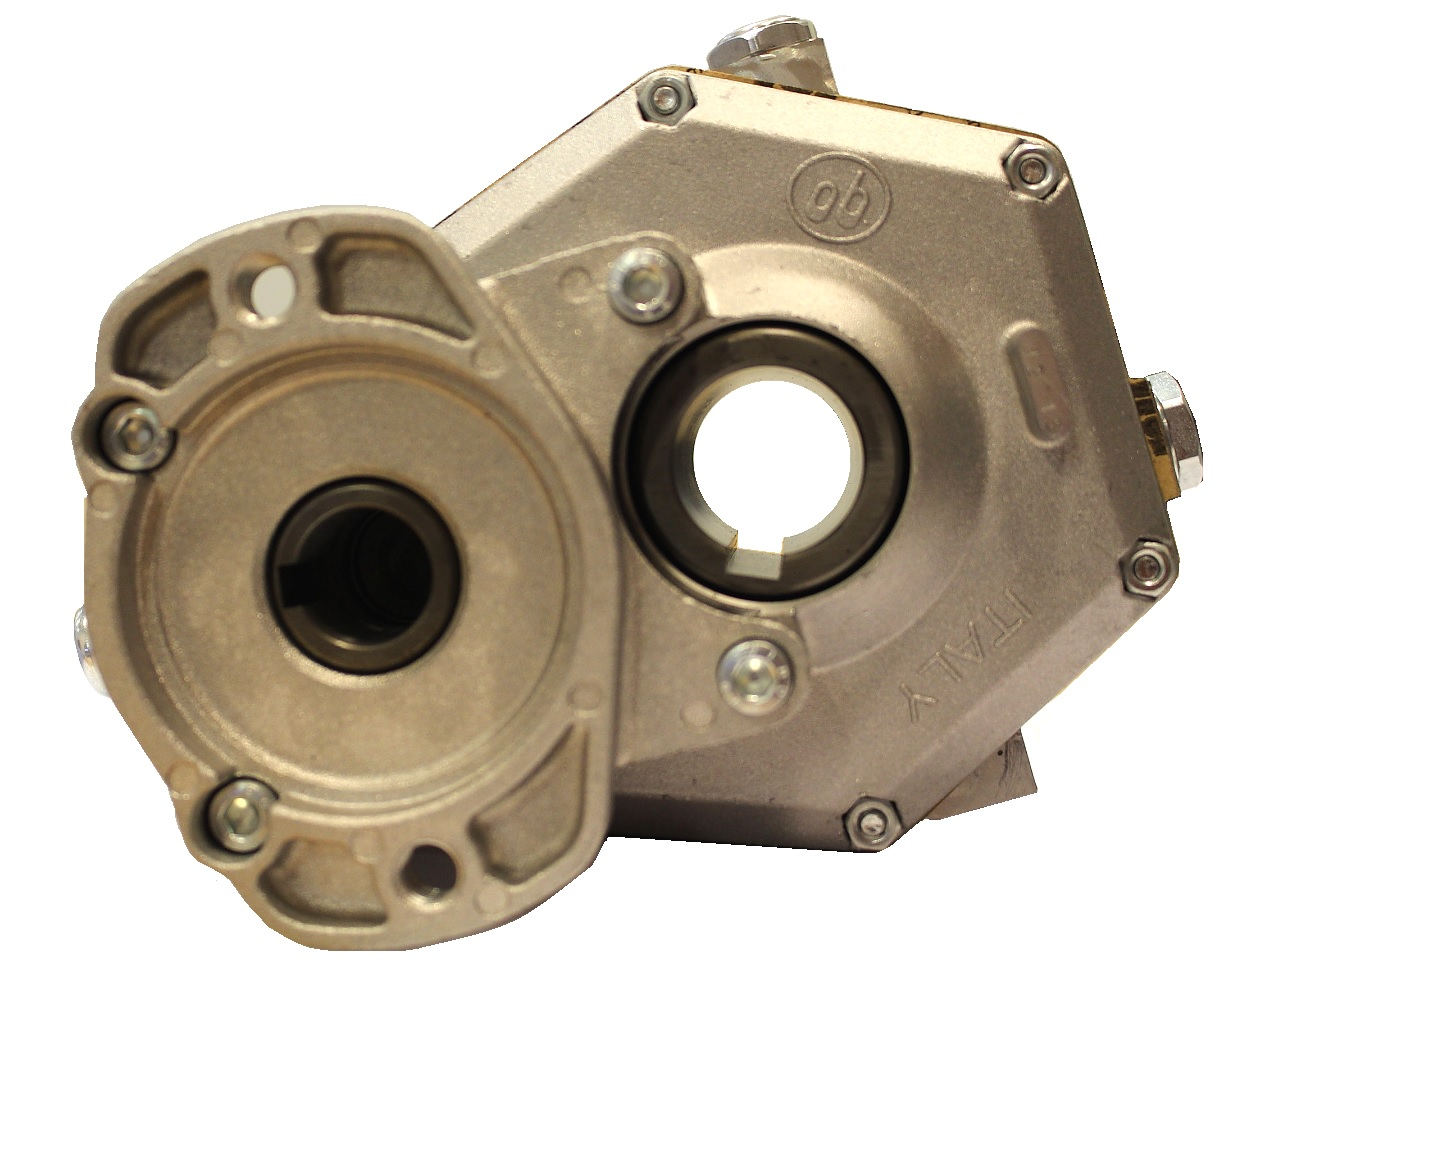 Real on 3 Shaft Gearbox